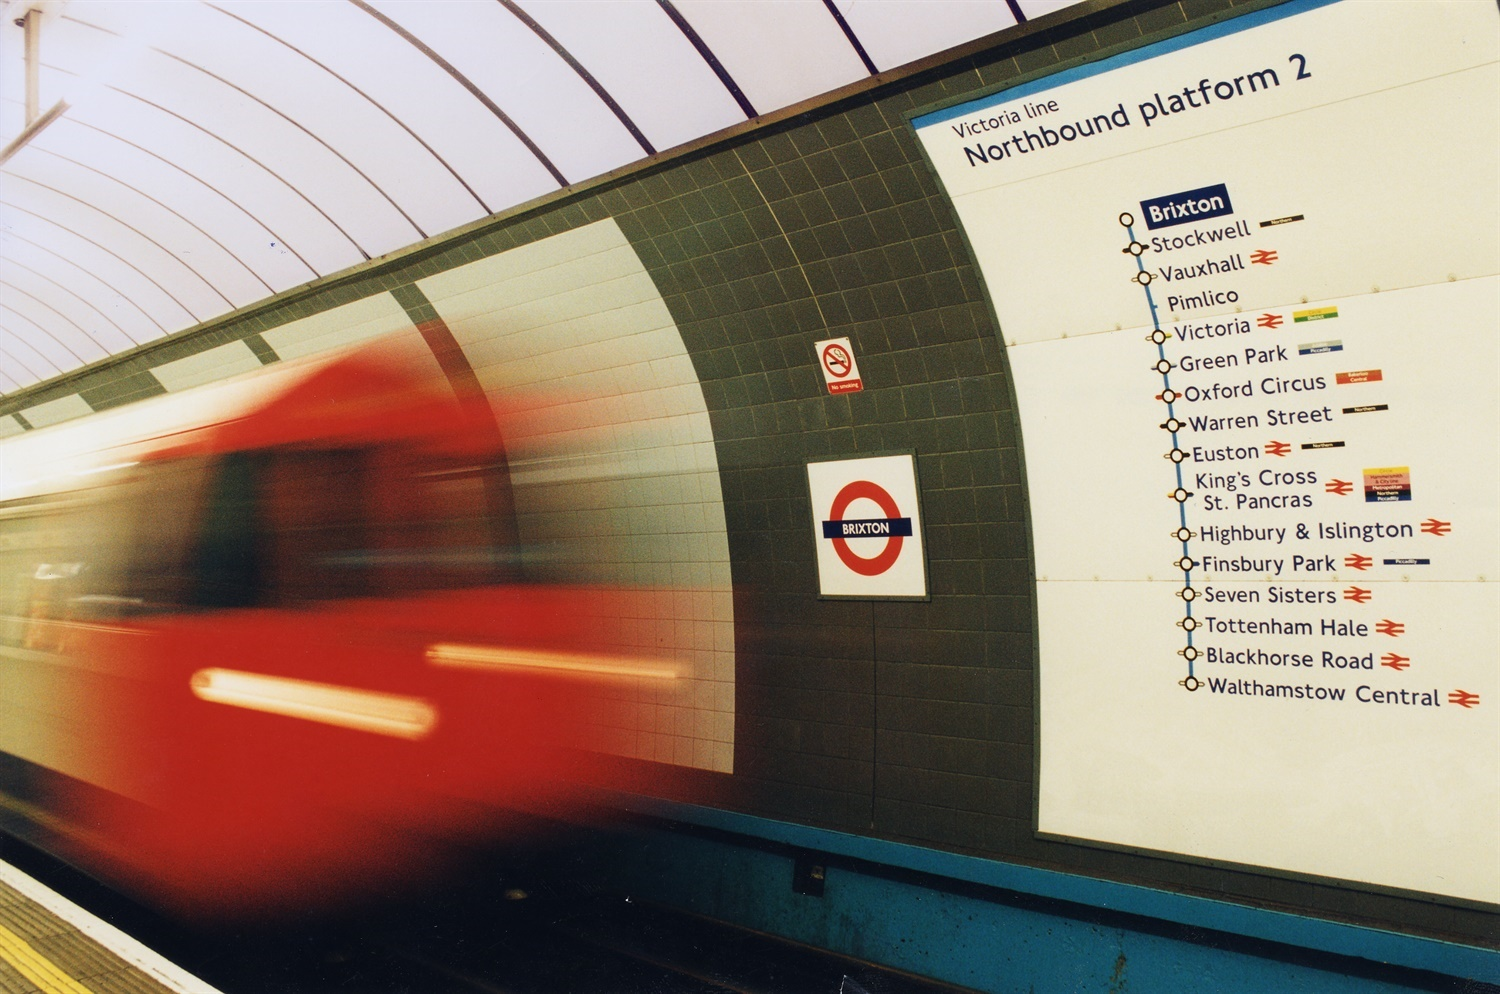 Night Tube will open in August, Aslef claim